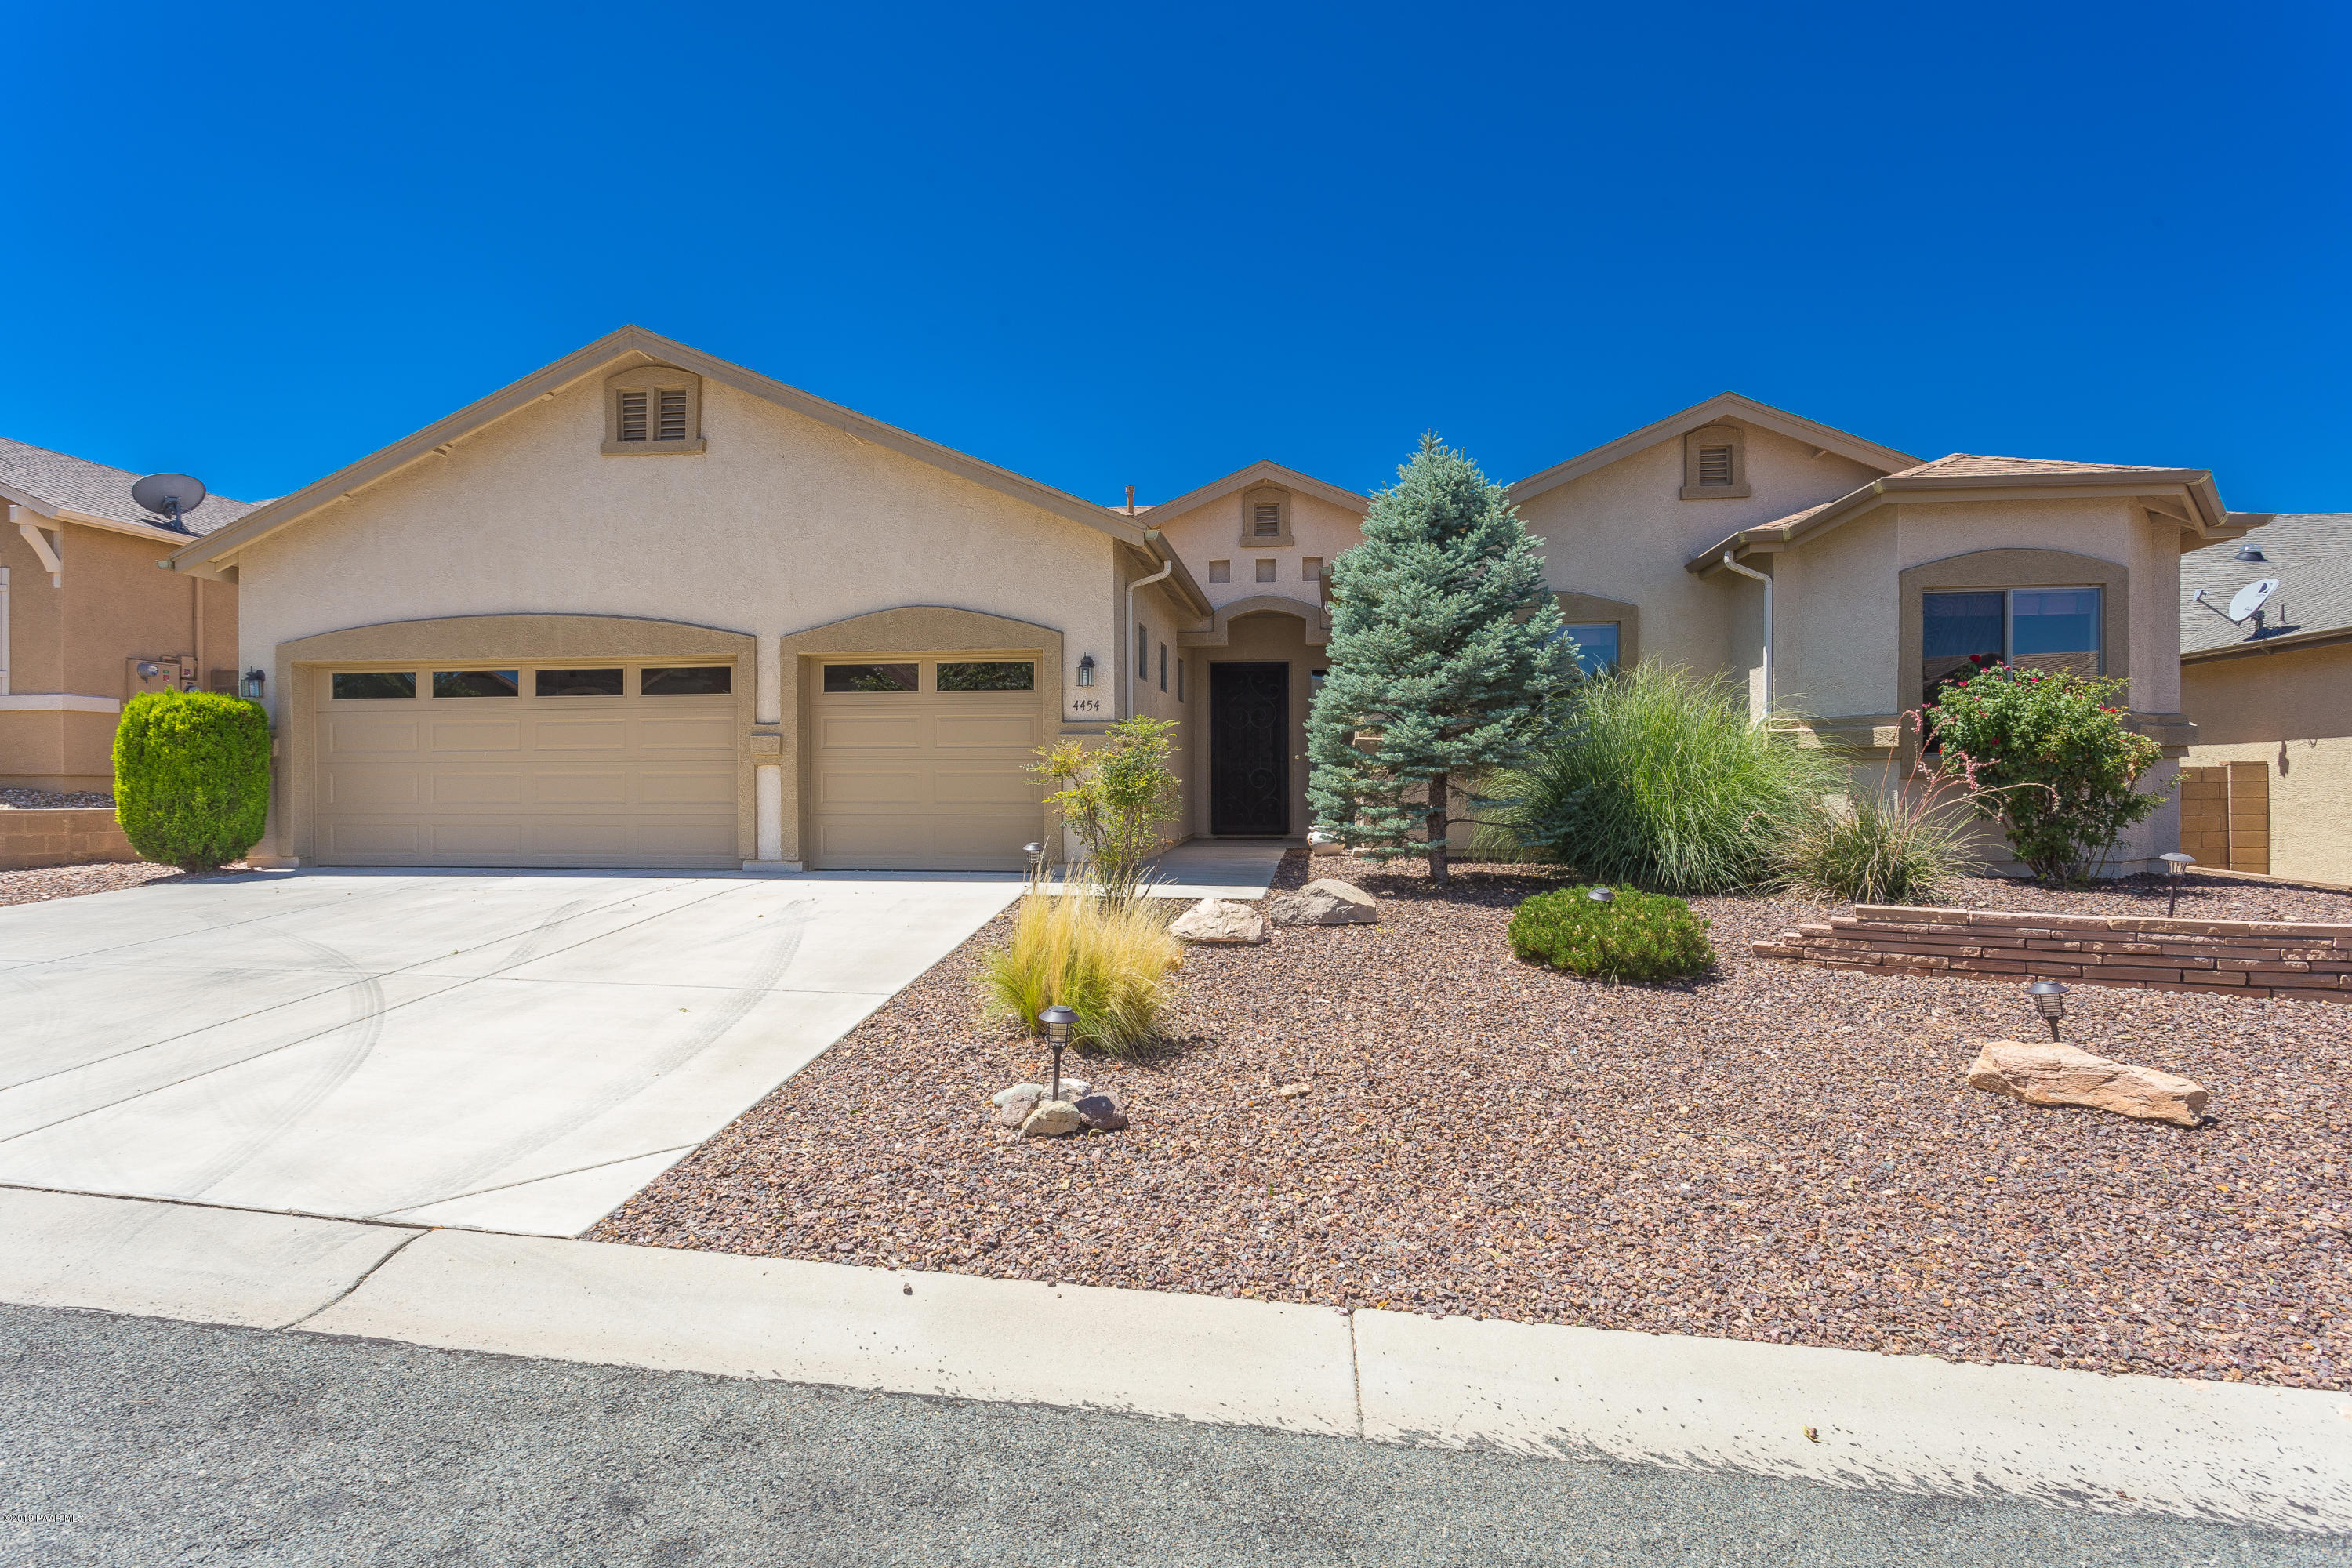 Photo of 4454 Kirkwood, Prescott Valley, AZ 86314